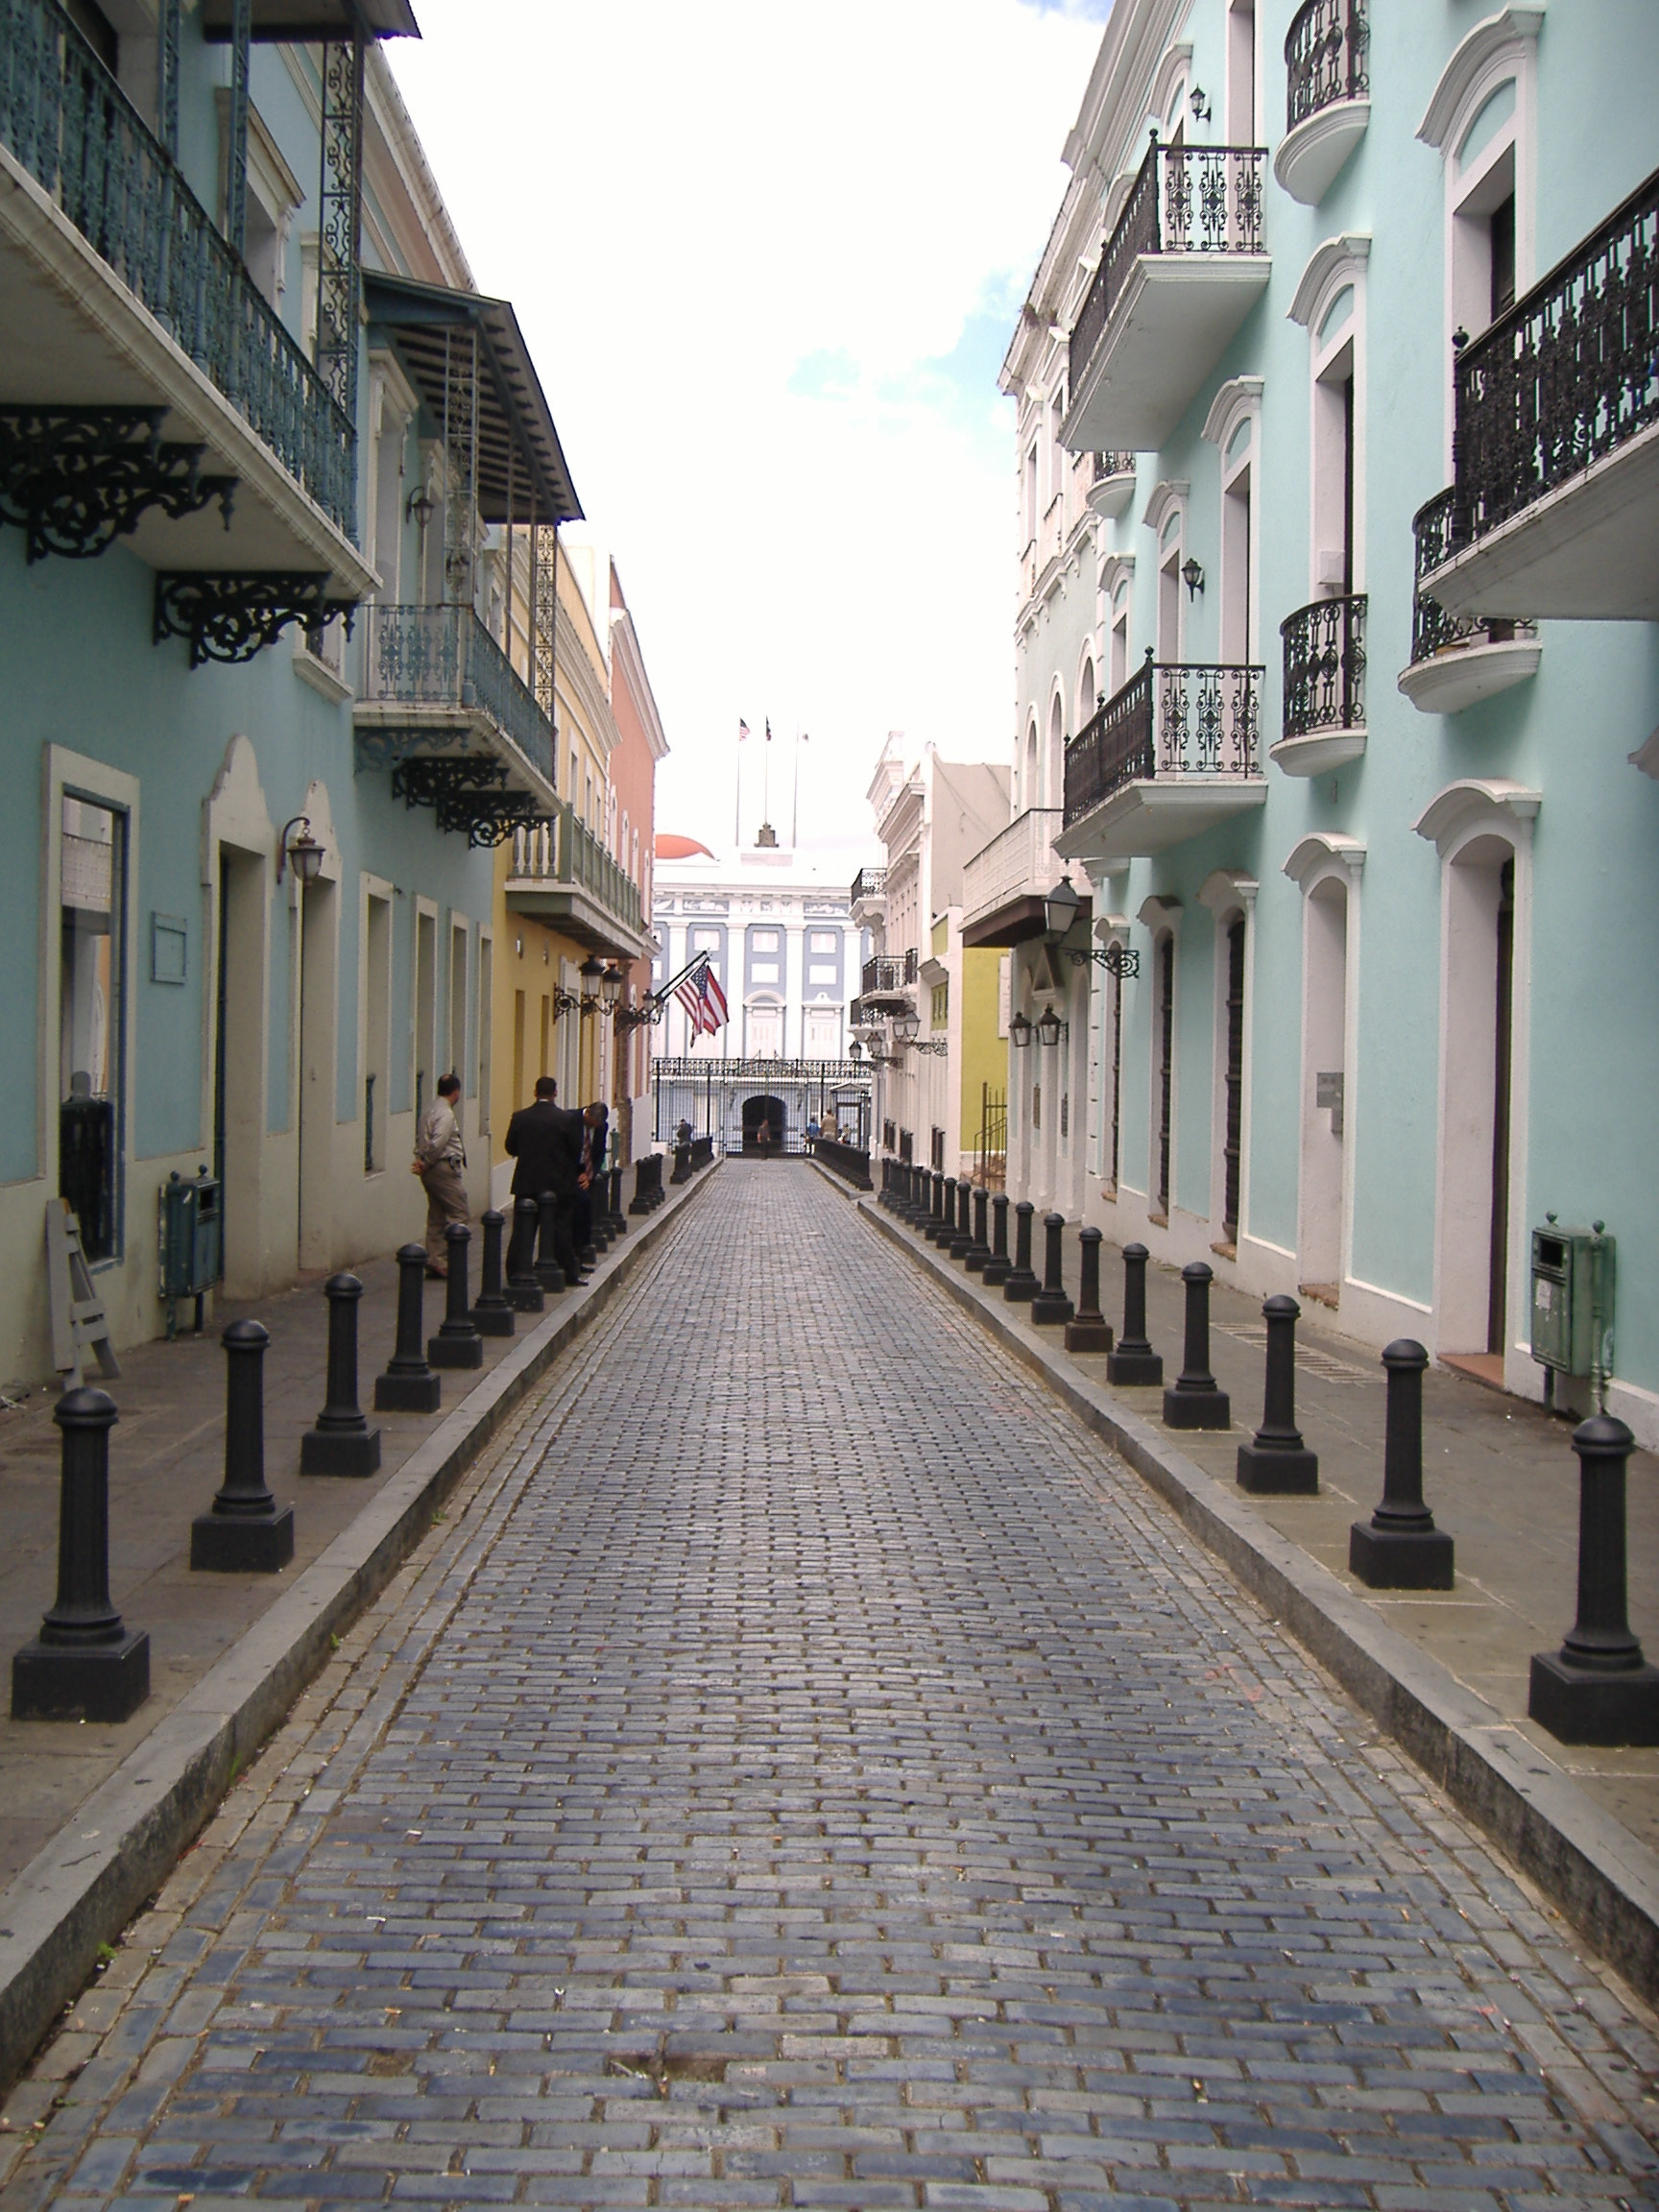 FileLa Fortaleza StreetJPG